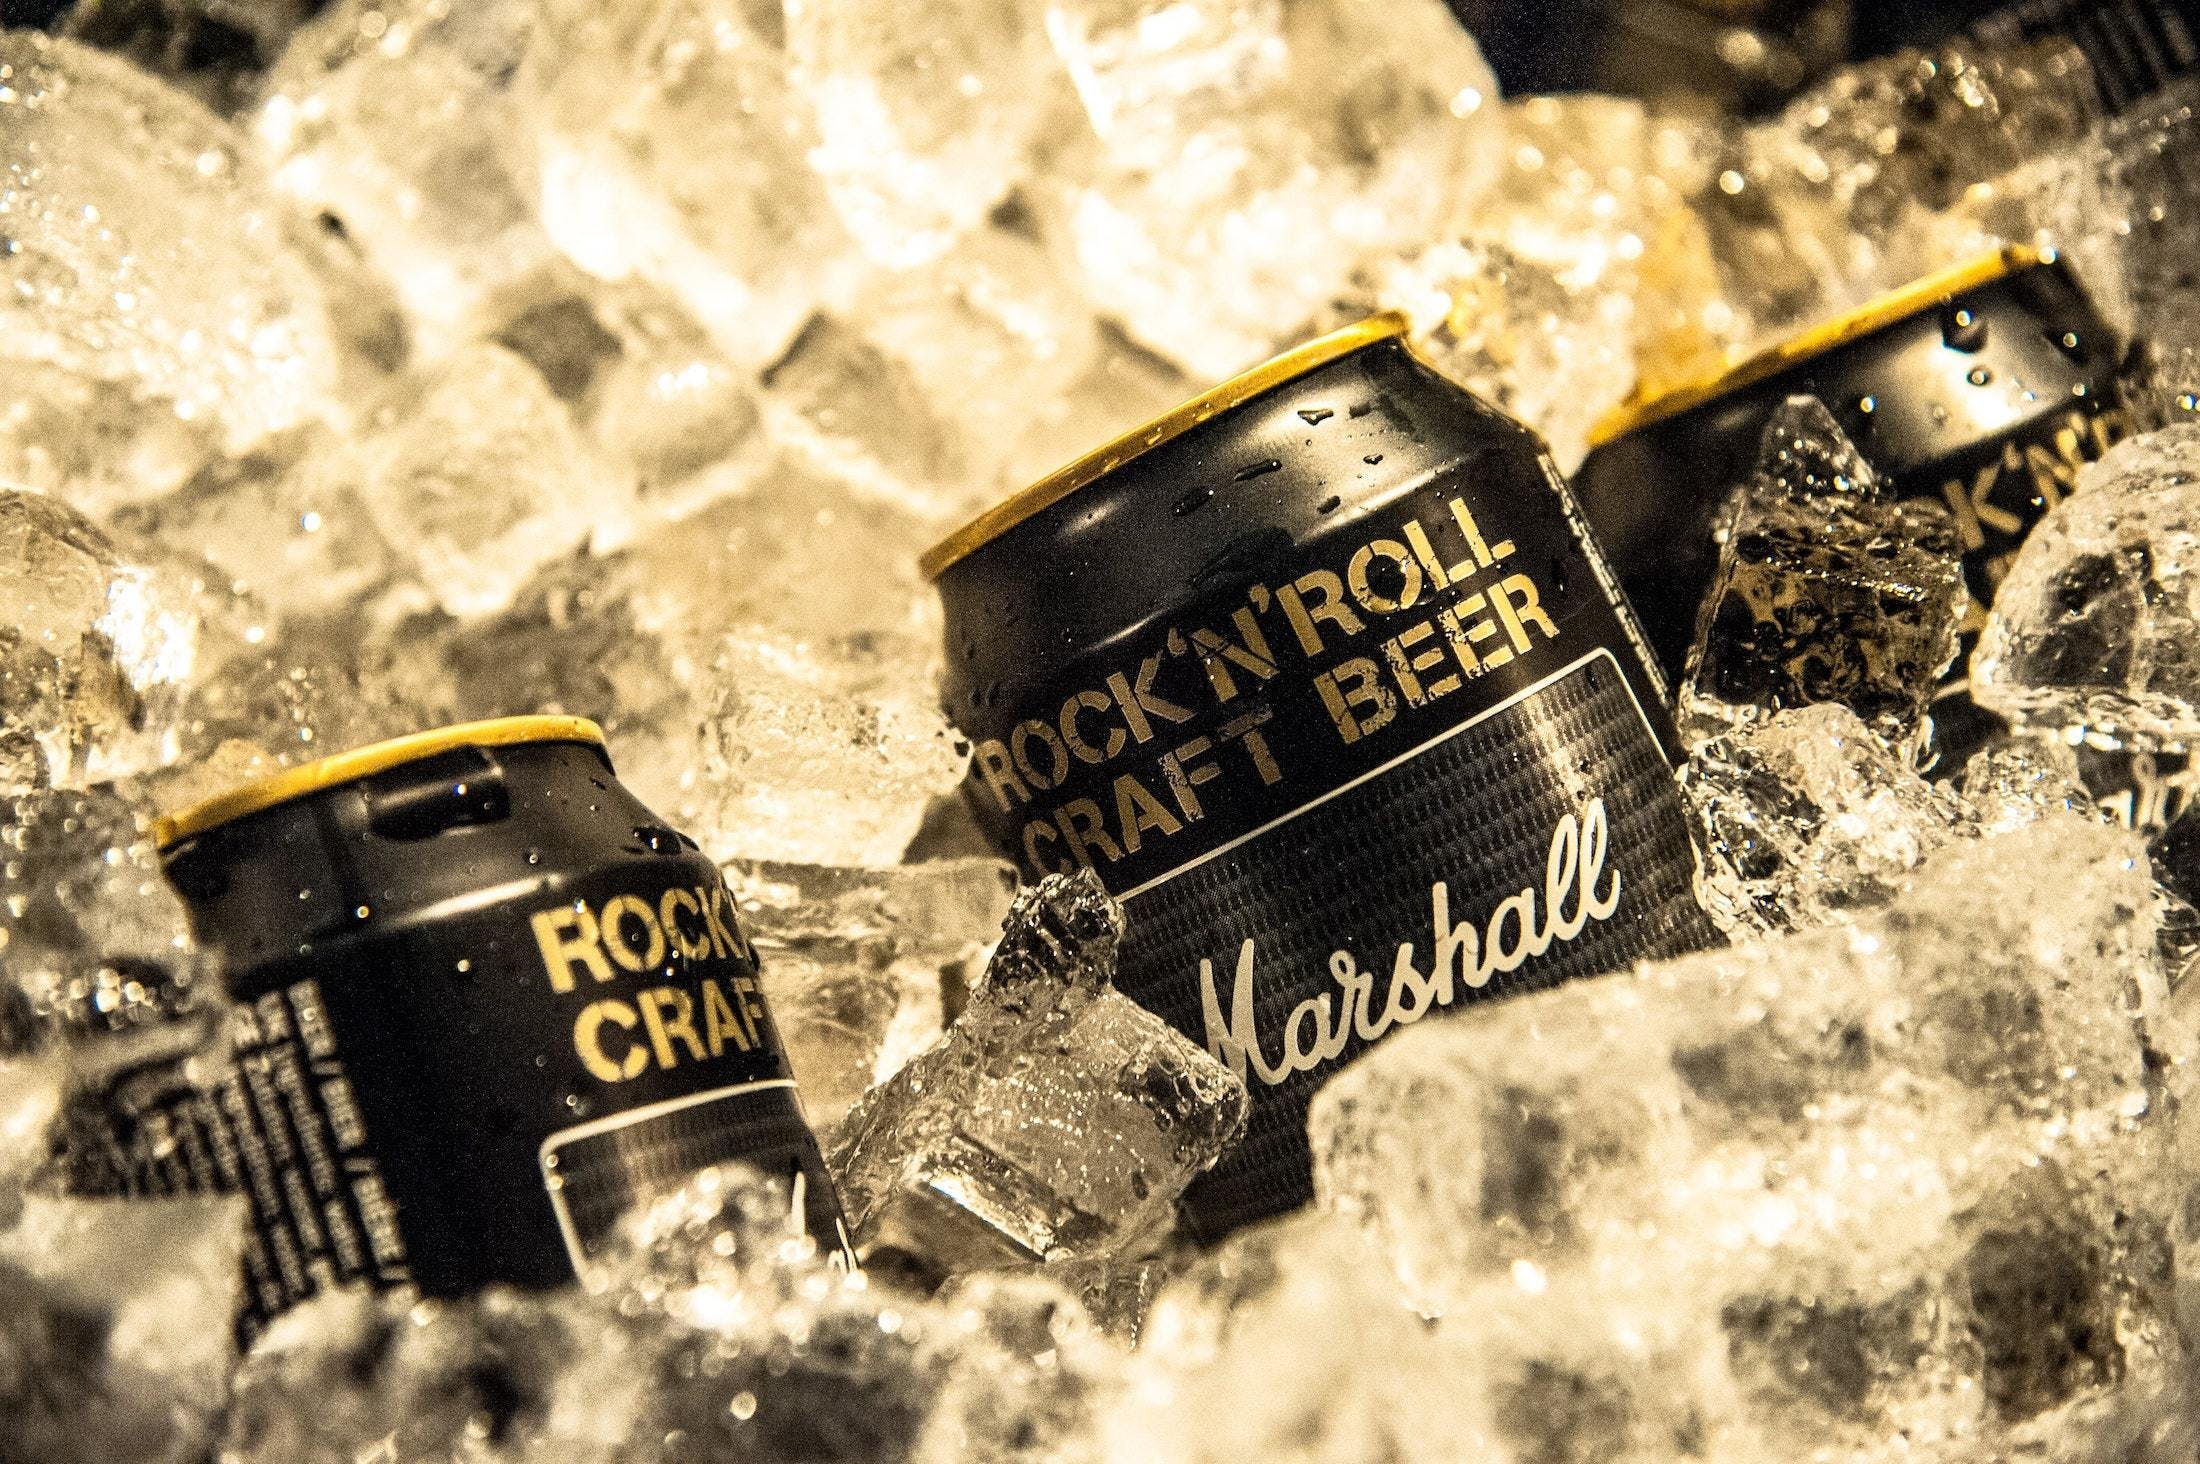 Marshall Amplification Introduce Three Craft Beers In Collaboration With William Bros. Brewing Company